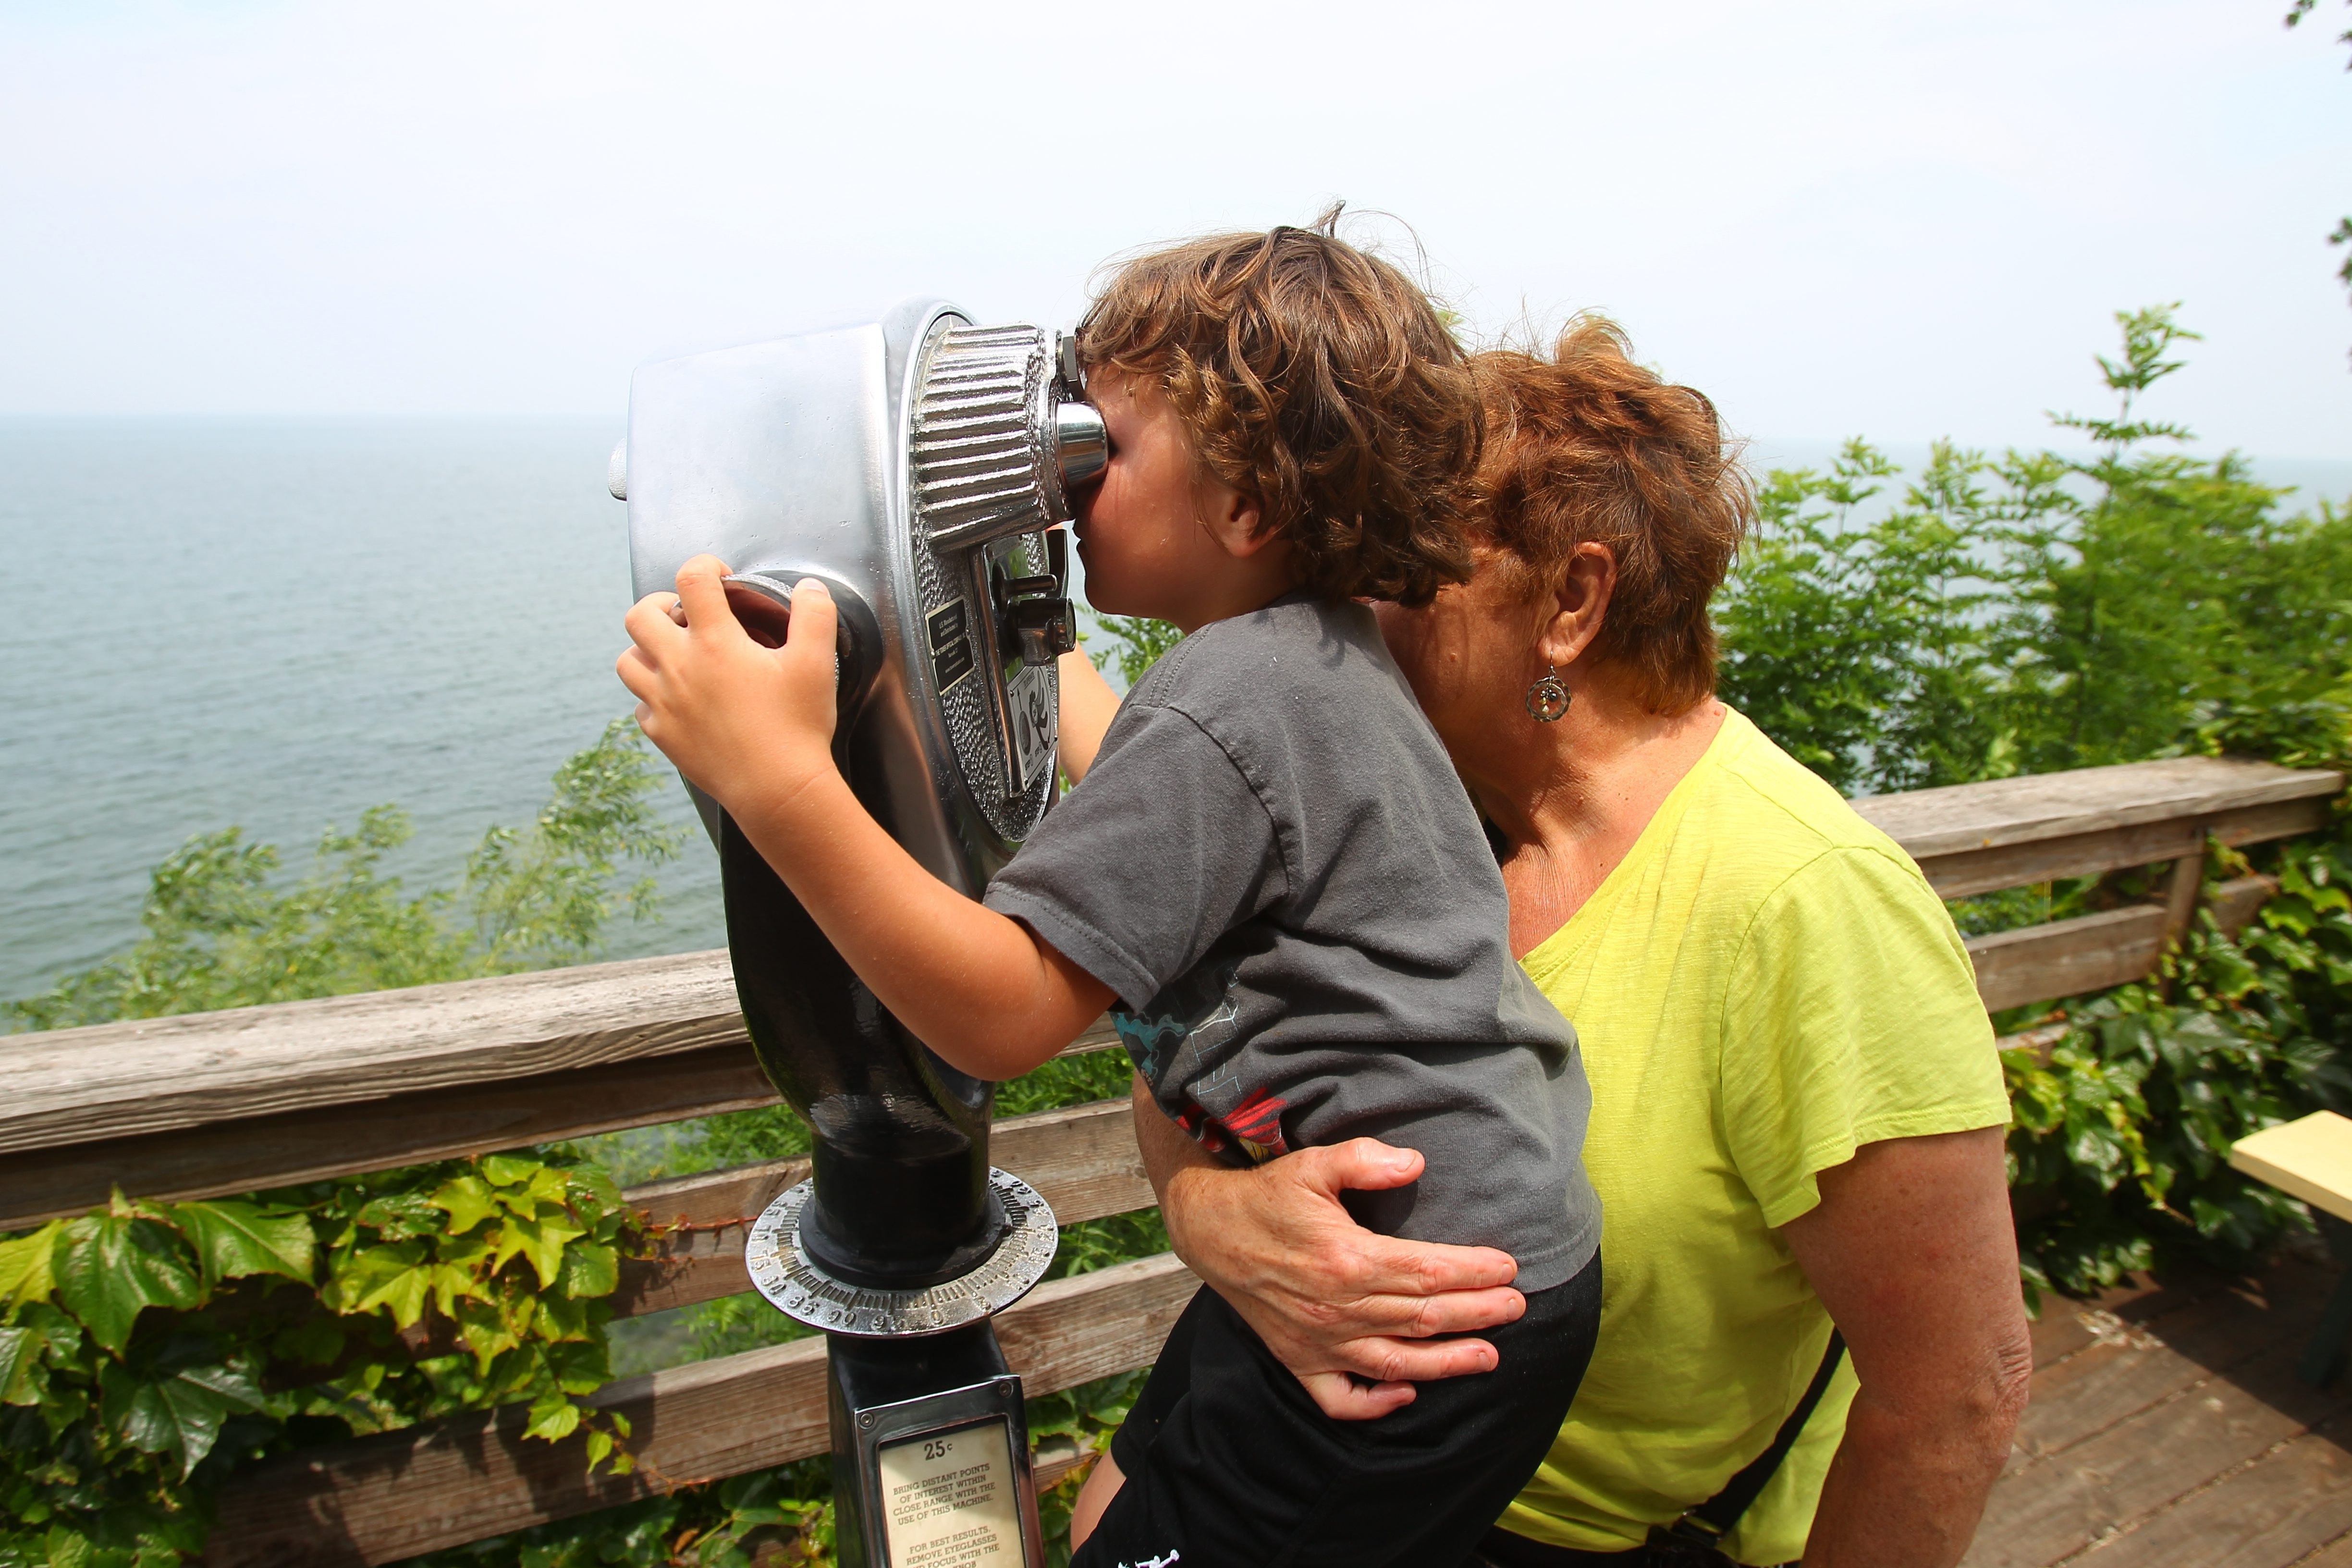 Sue Hutton, of Newfane,  helps her 5 year-old grandson, Noah Orenf , as he tries to look  through a tower binocular  at Lakeview Village boardwalk  in  Olcott.